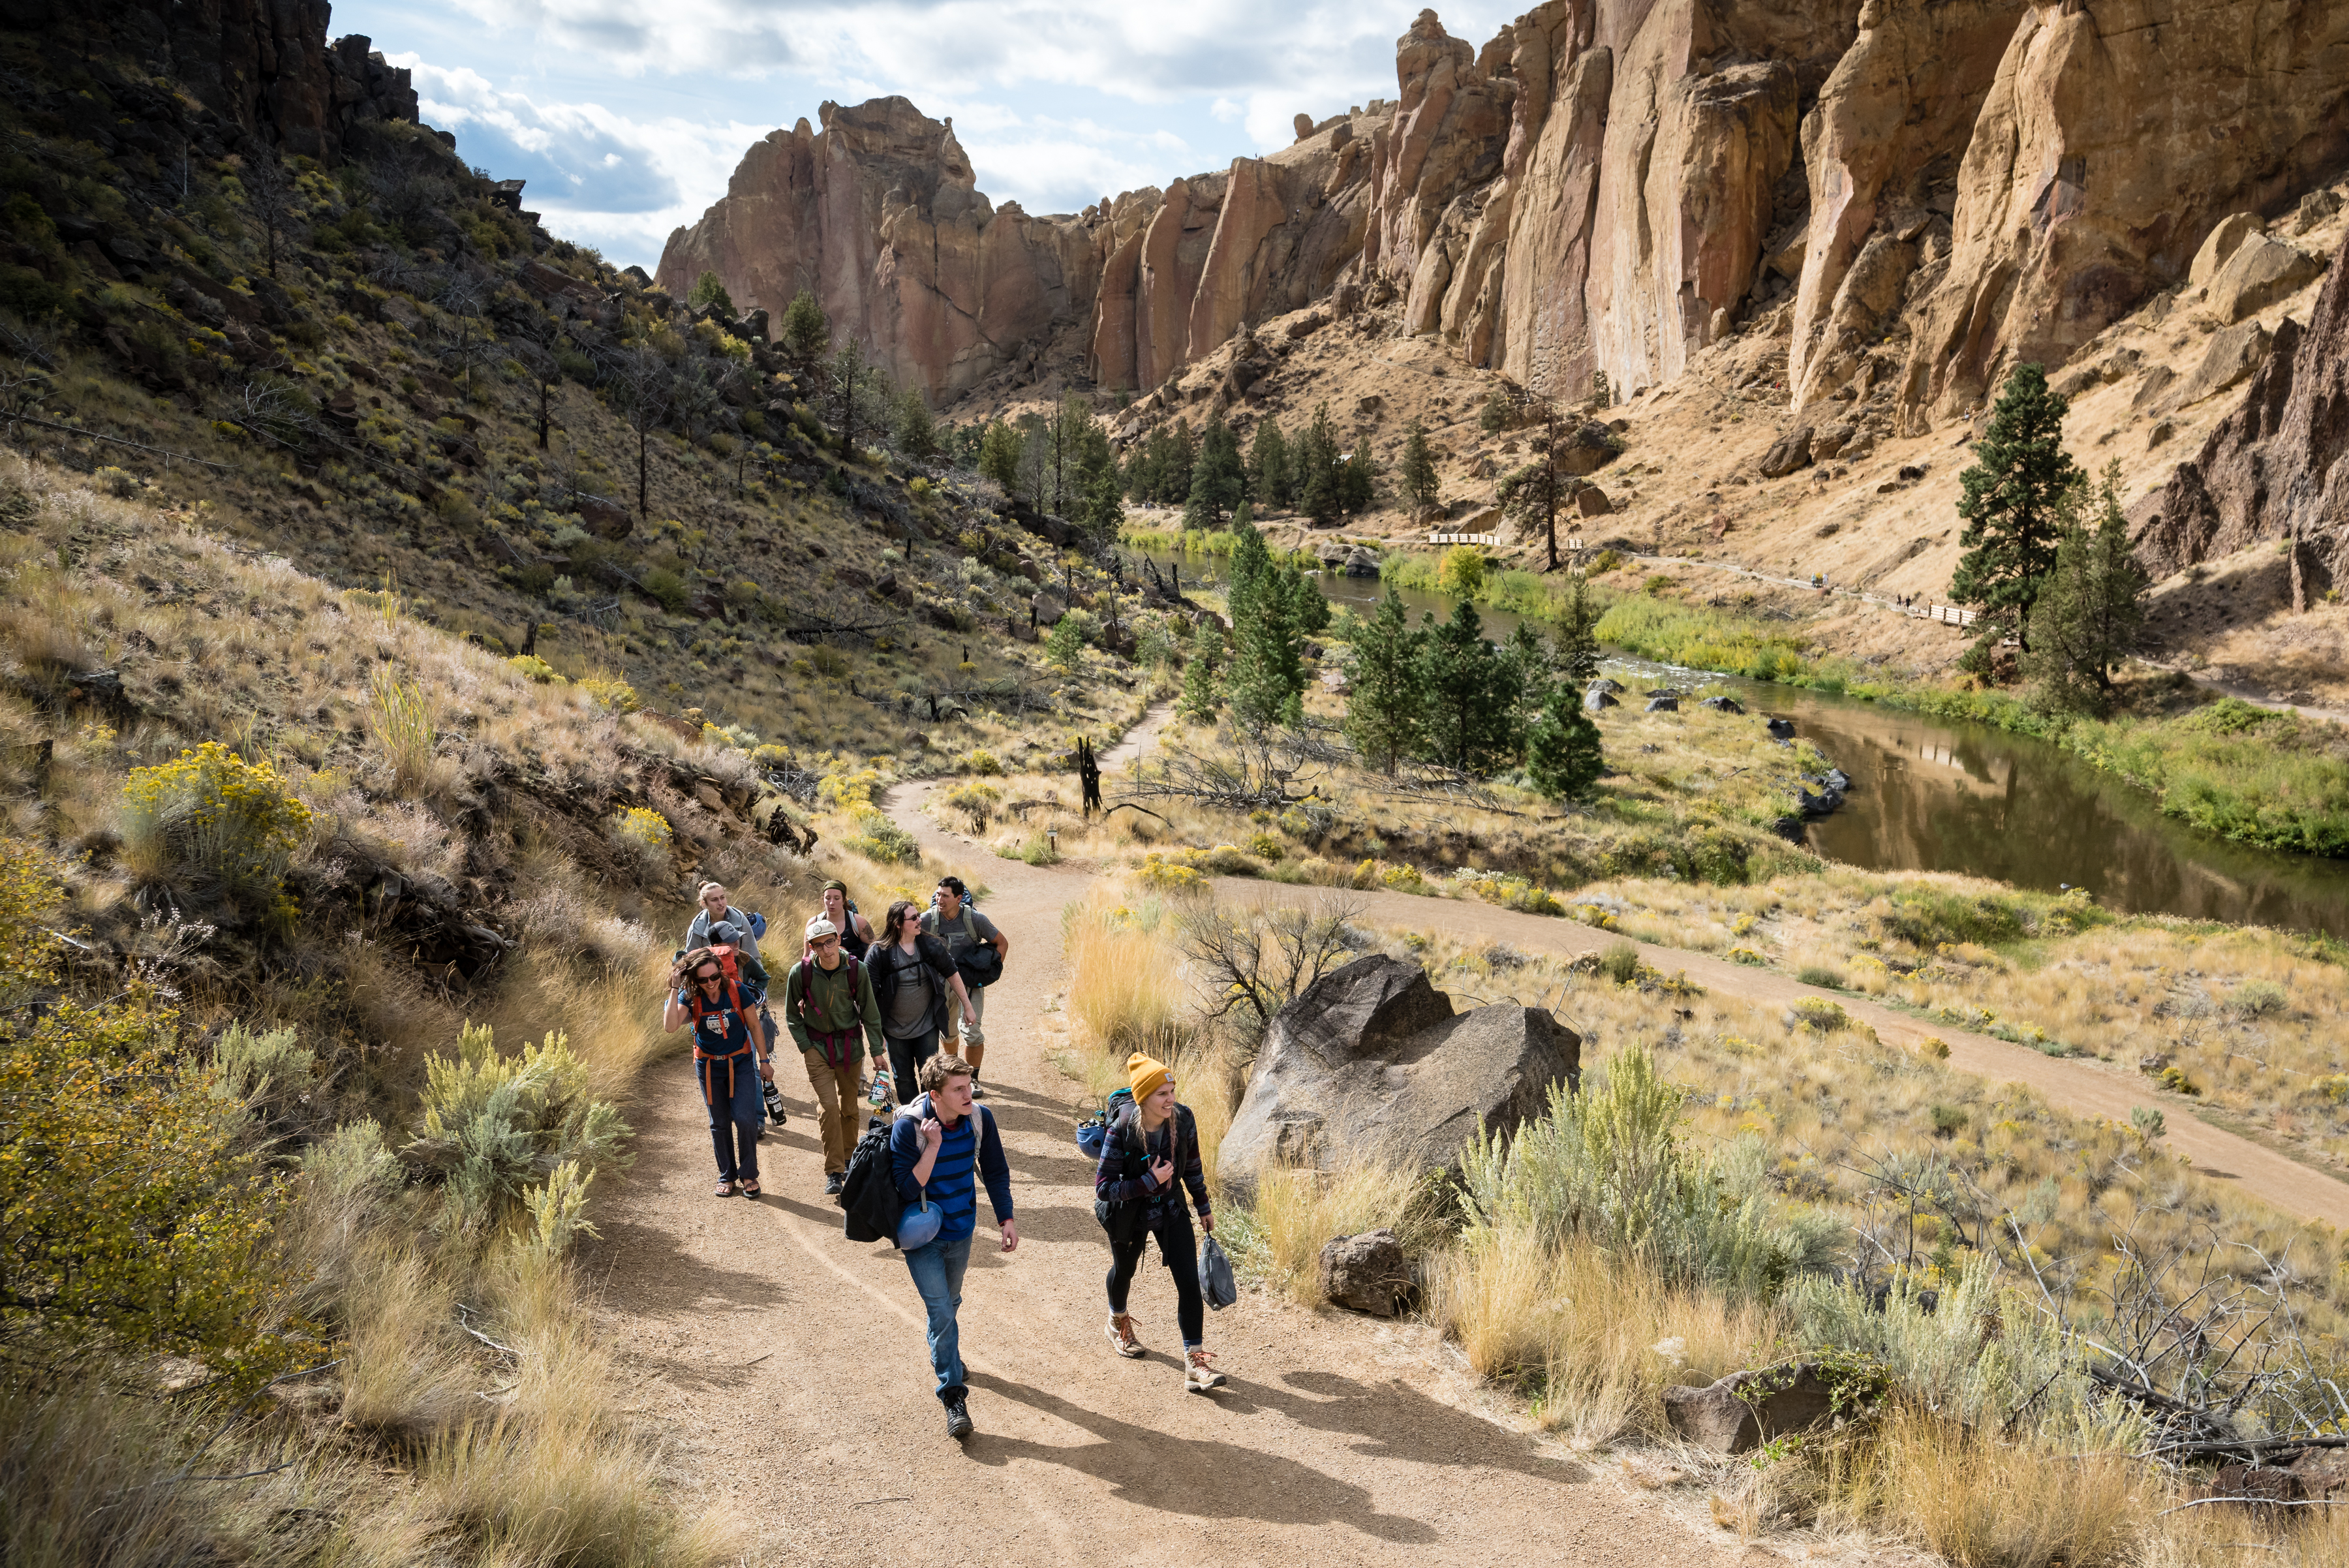 OSU-Cascades students and trip leaders hike out after rock climbing during the Headwaters Central Oregon Experience Trip at Smith Rock State Park on Friday, September 20, 2019.